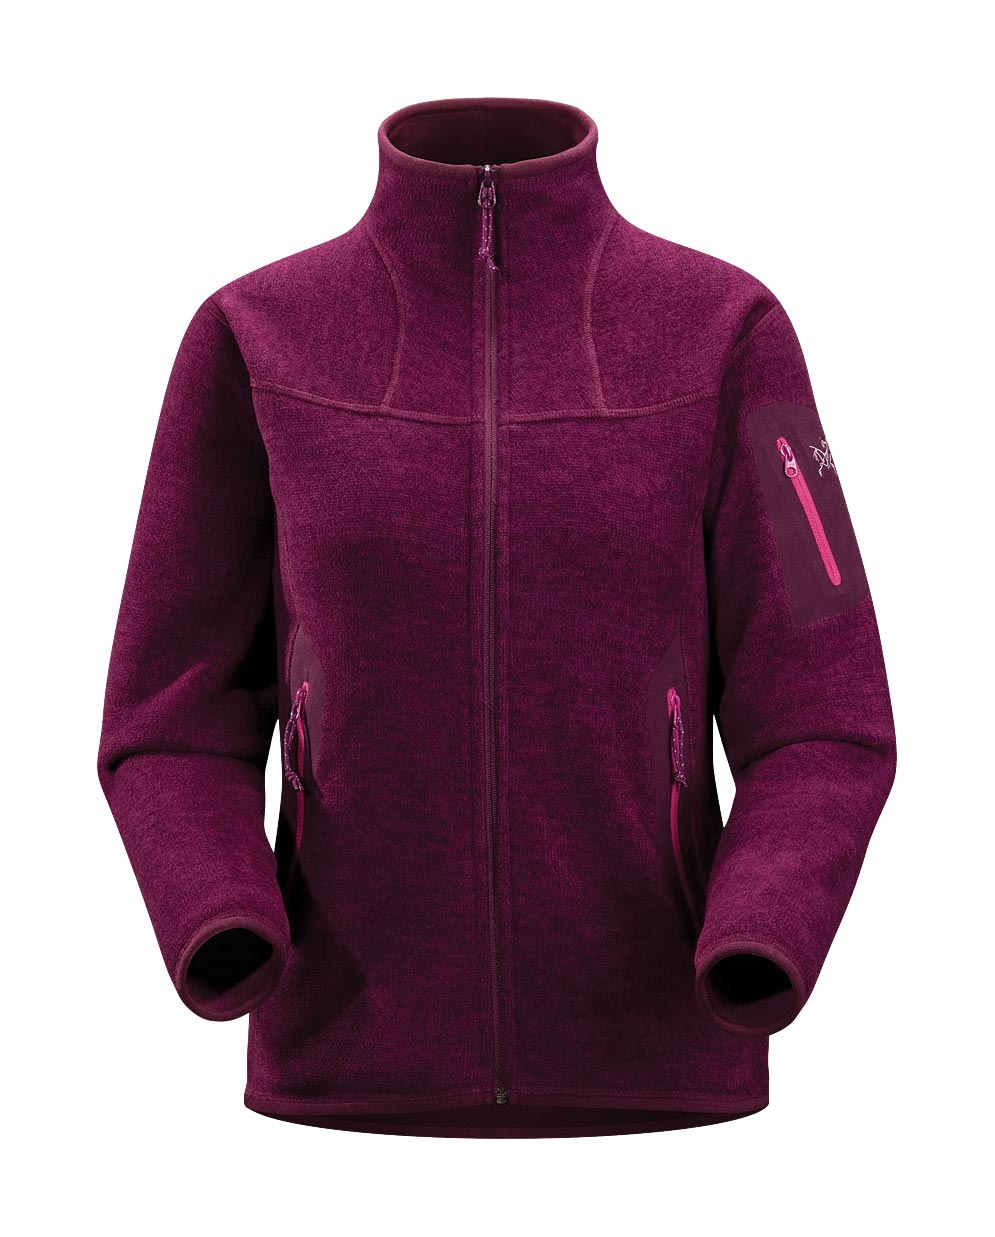 Arcteryx Women Purpura Covert Cardigan